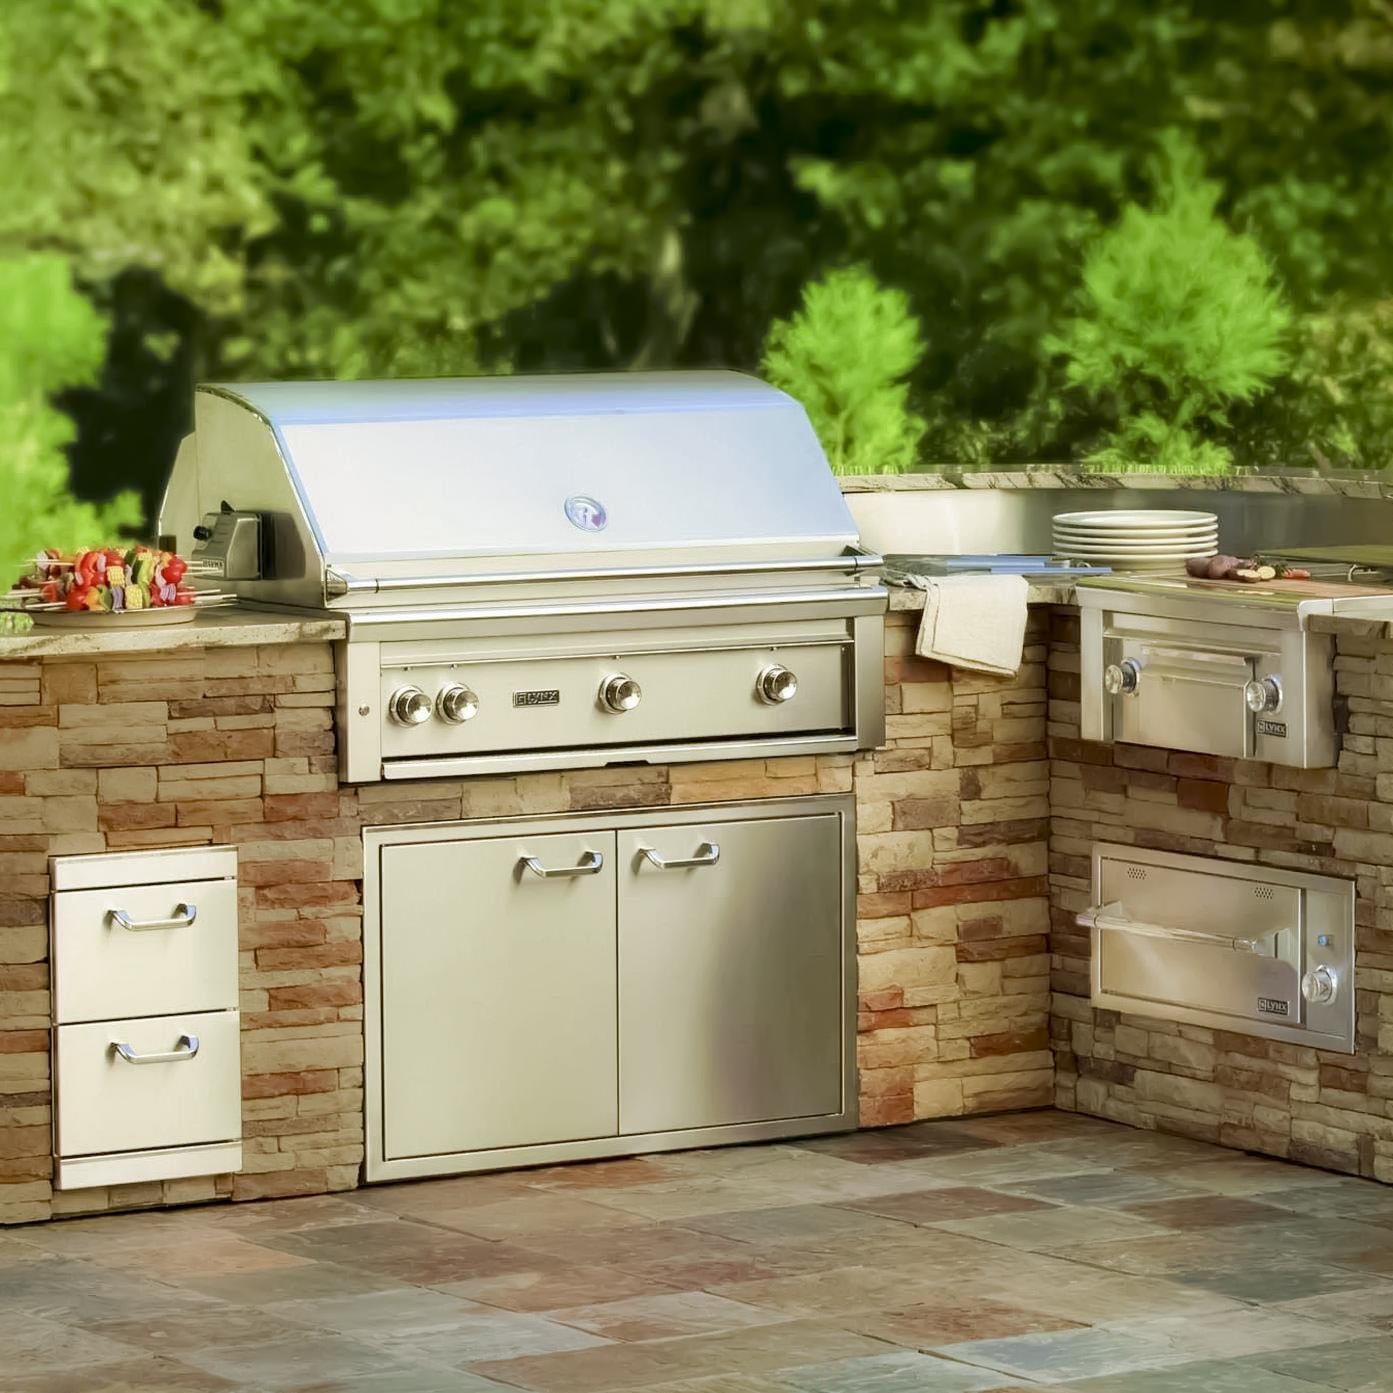 """Lynx 36"""" Grill displayed. Interested in purchasing one? Check out our shop  here for a full selection of Lynx Grills and other outdoor kitchen accessories."""